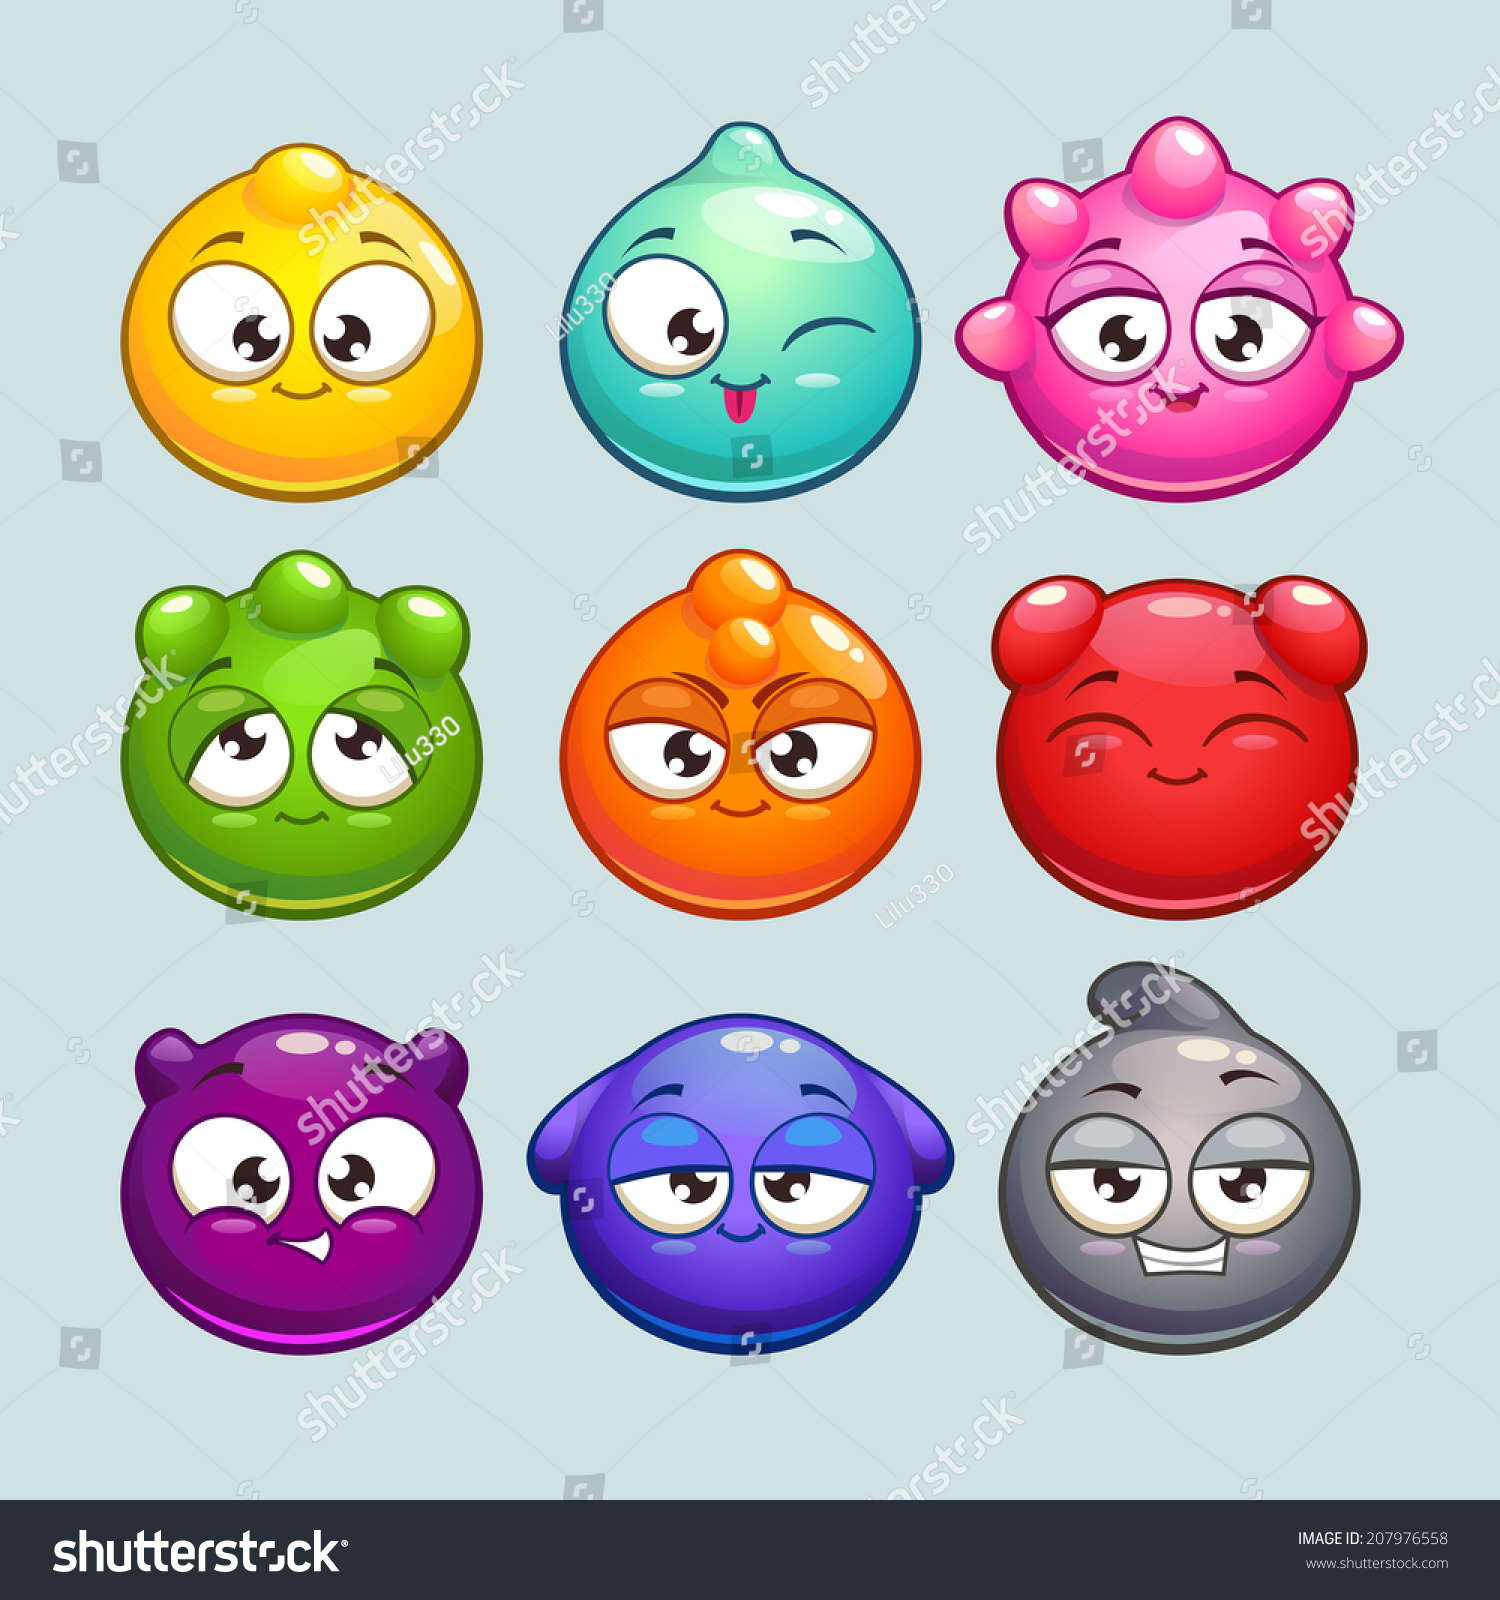 Cartoon Characters Cute : Different pictures cartoon character bhumi desai images